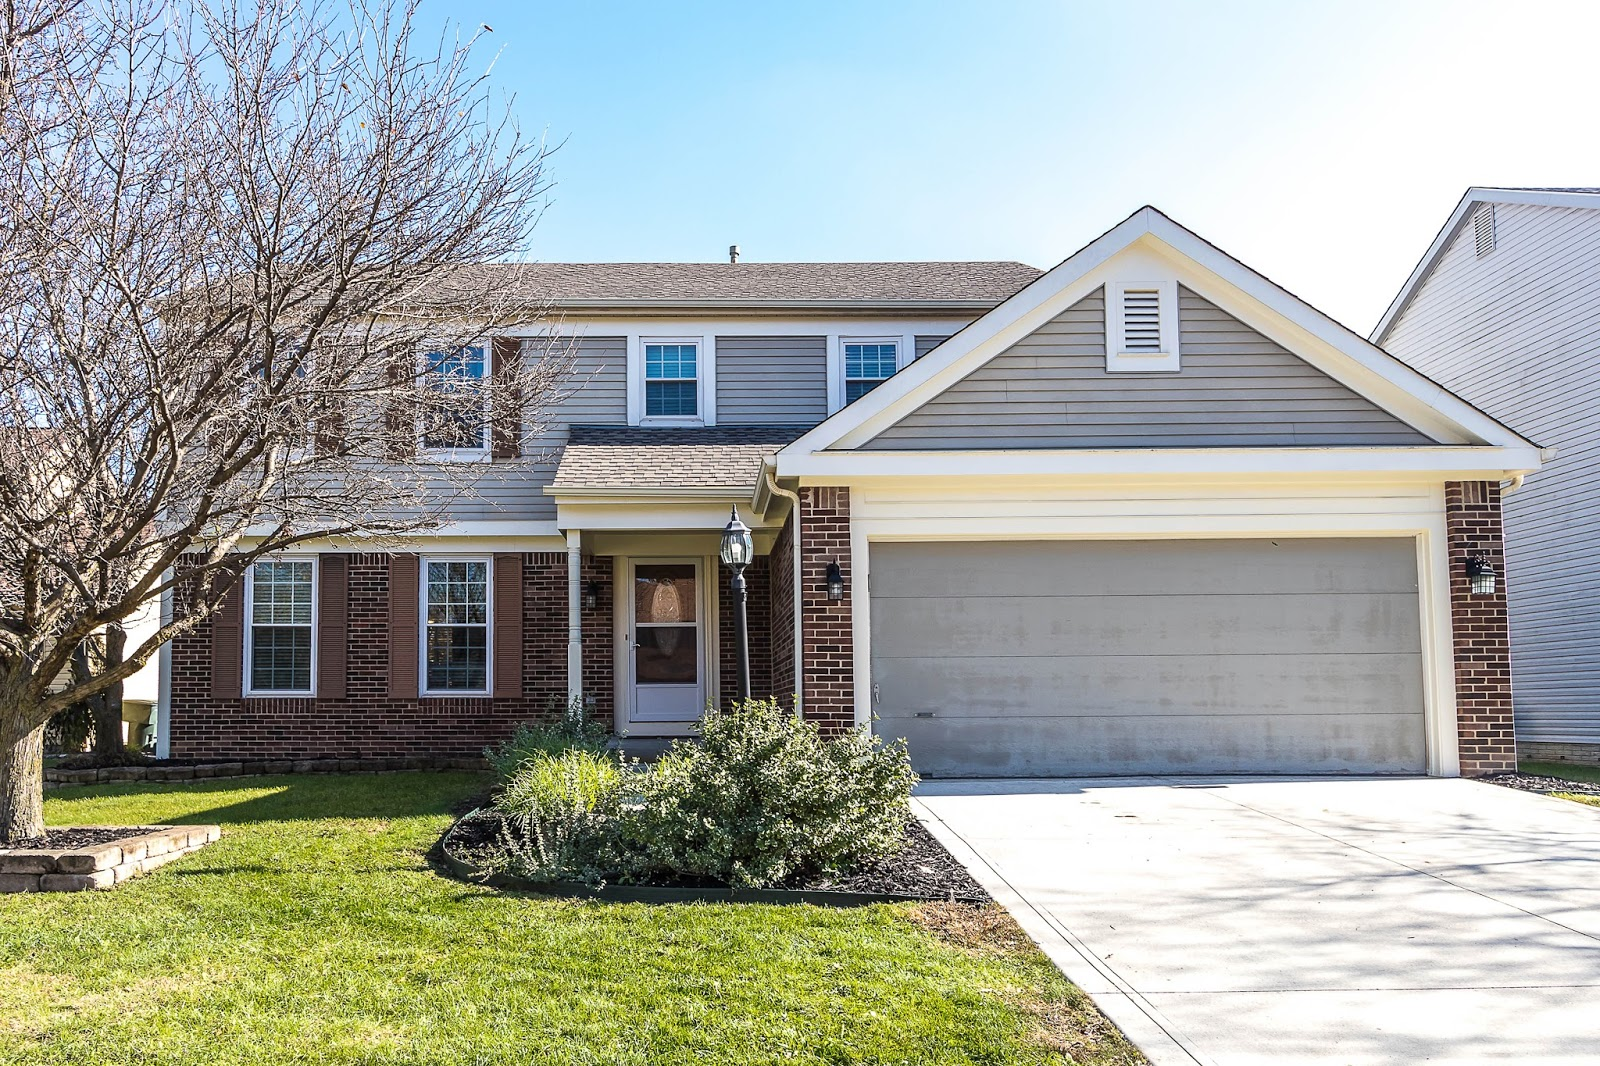 OPEN HOUSE IN DUBLIN Central Ohio Real Estate Blog